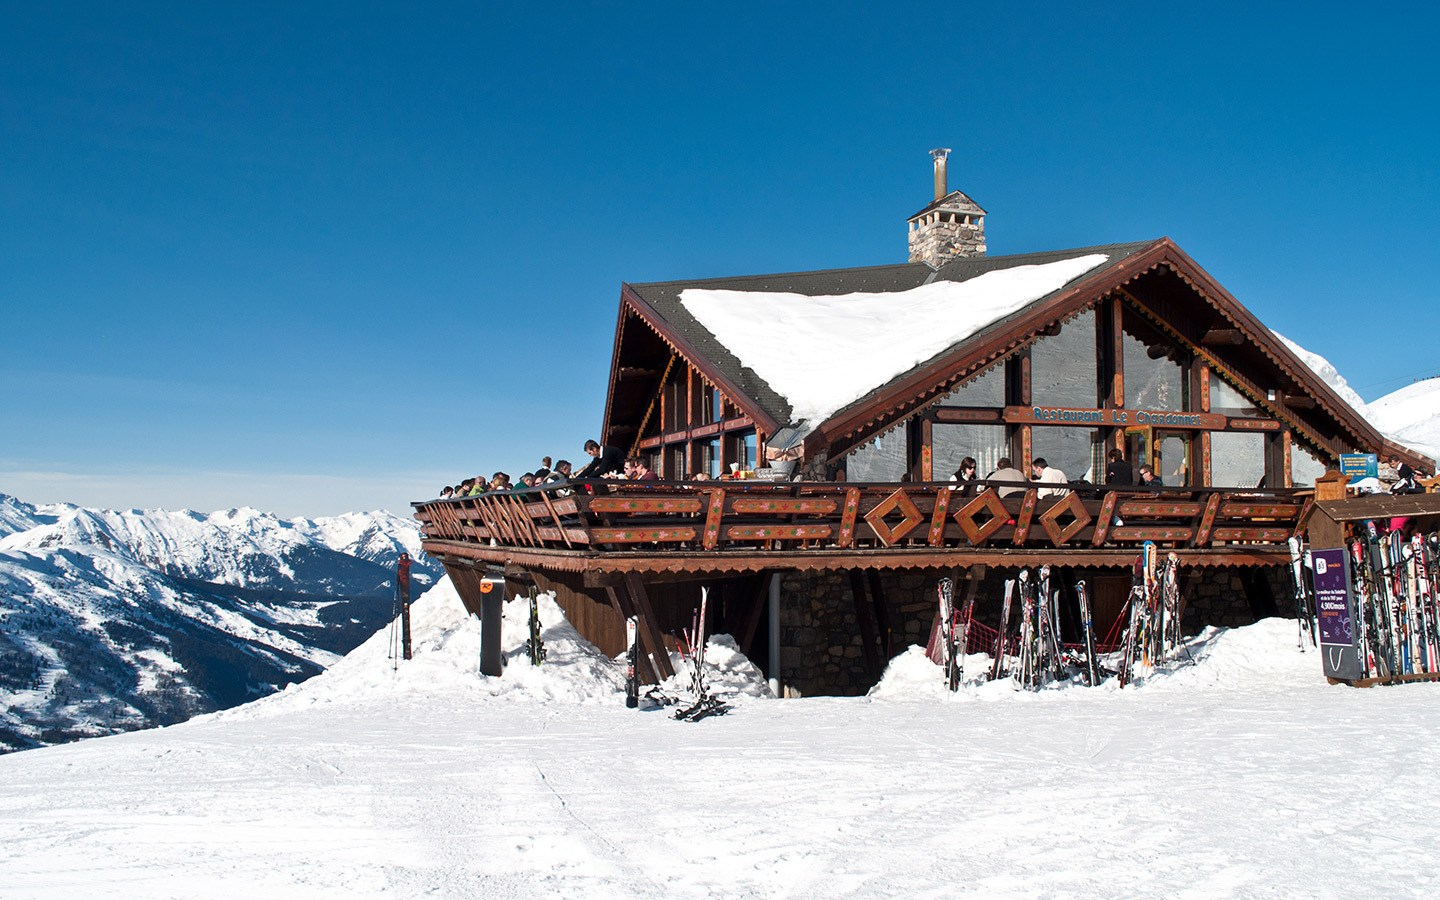 Restaurant on the piste